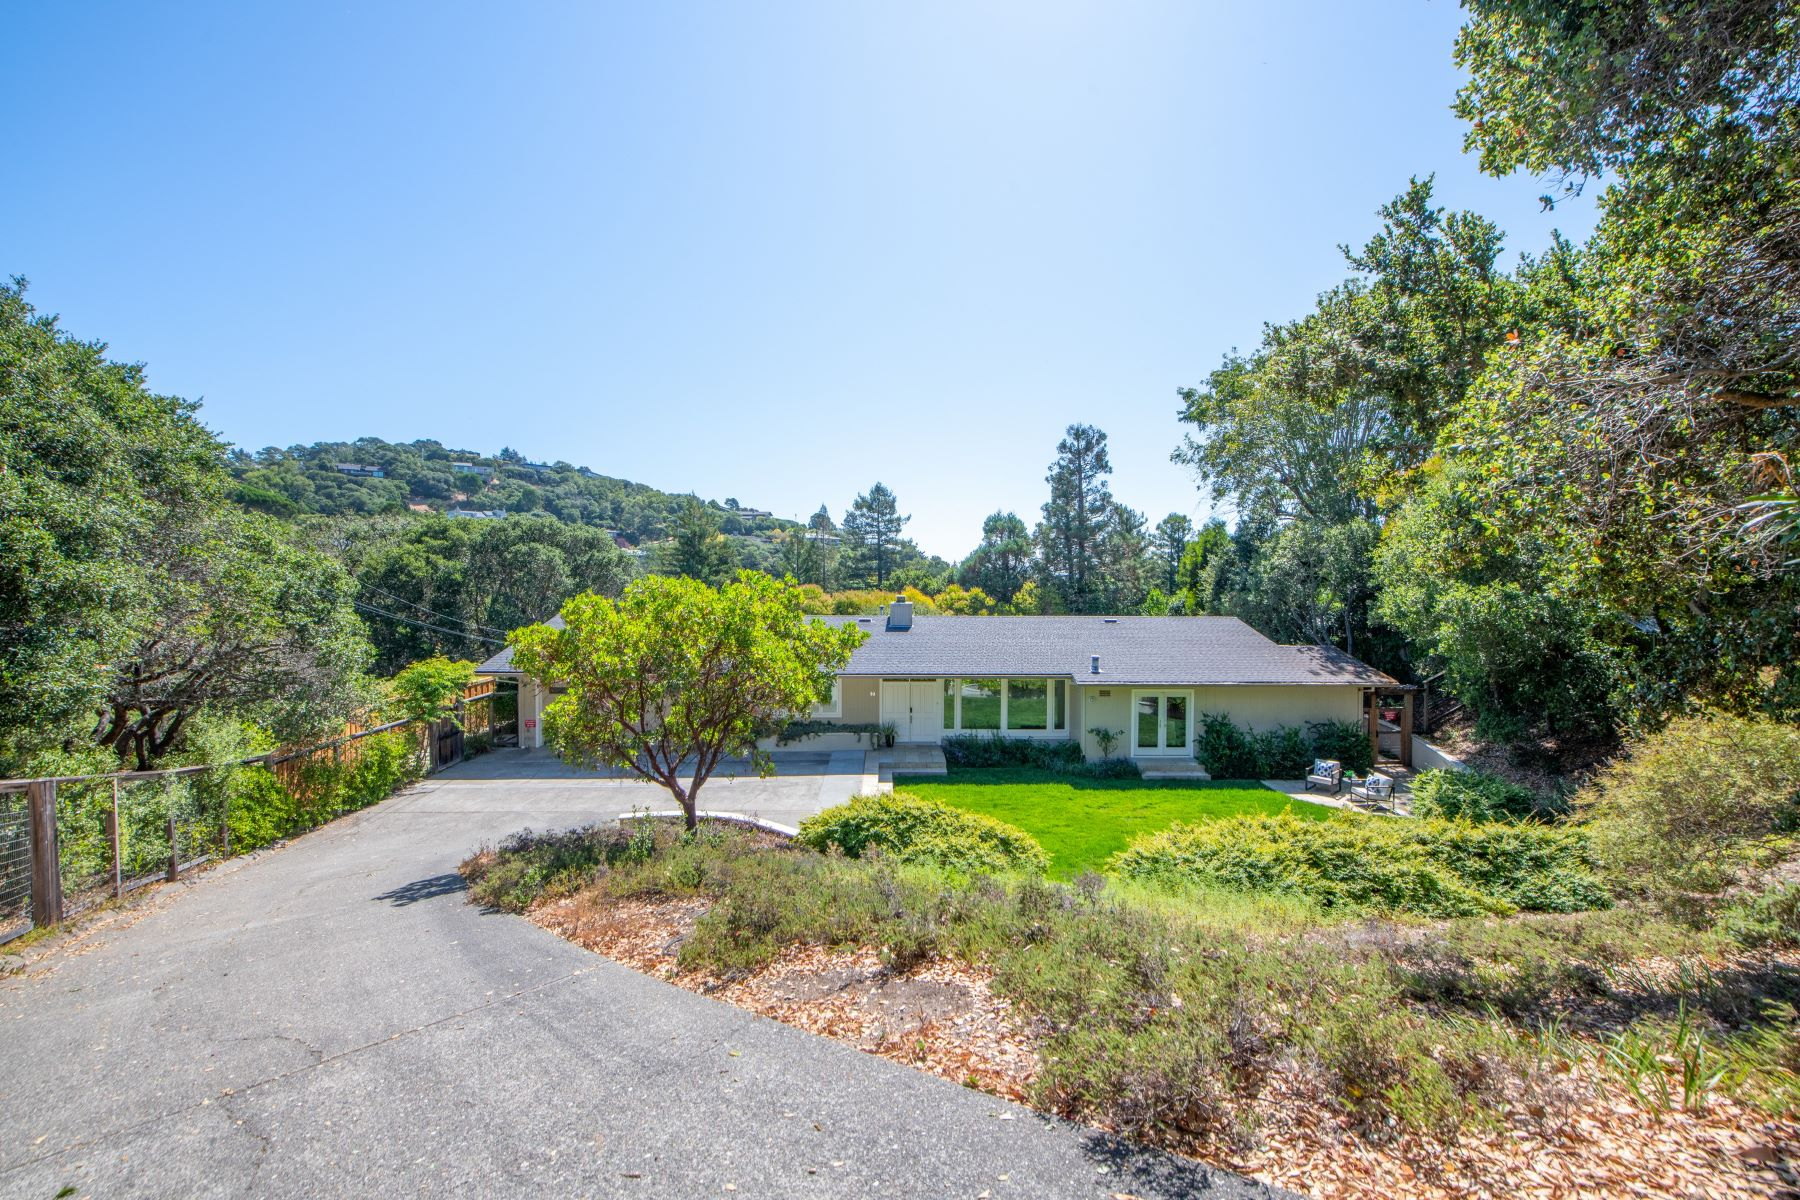 Single Family Homes for Sale at Serene Single Level Retreat in Desirable Loch Lomond 40 Inverness Dr San Rafael, California 94901 United States